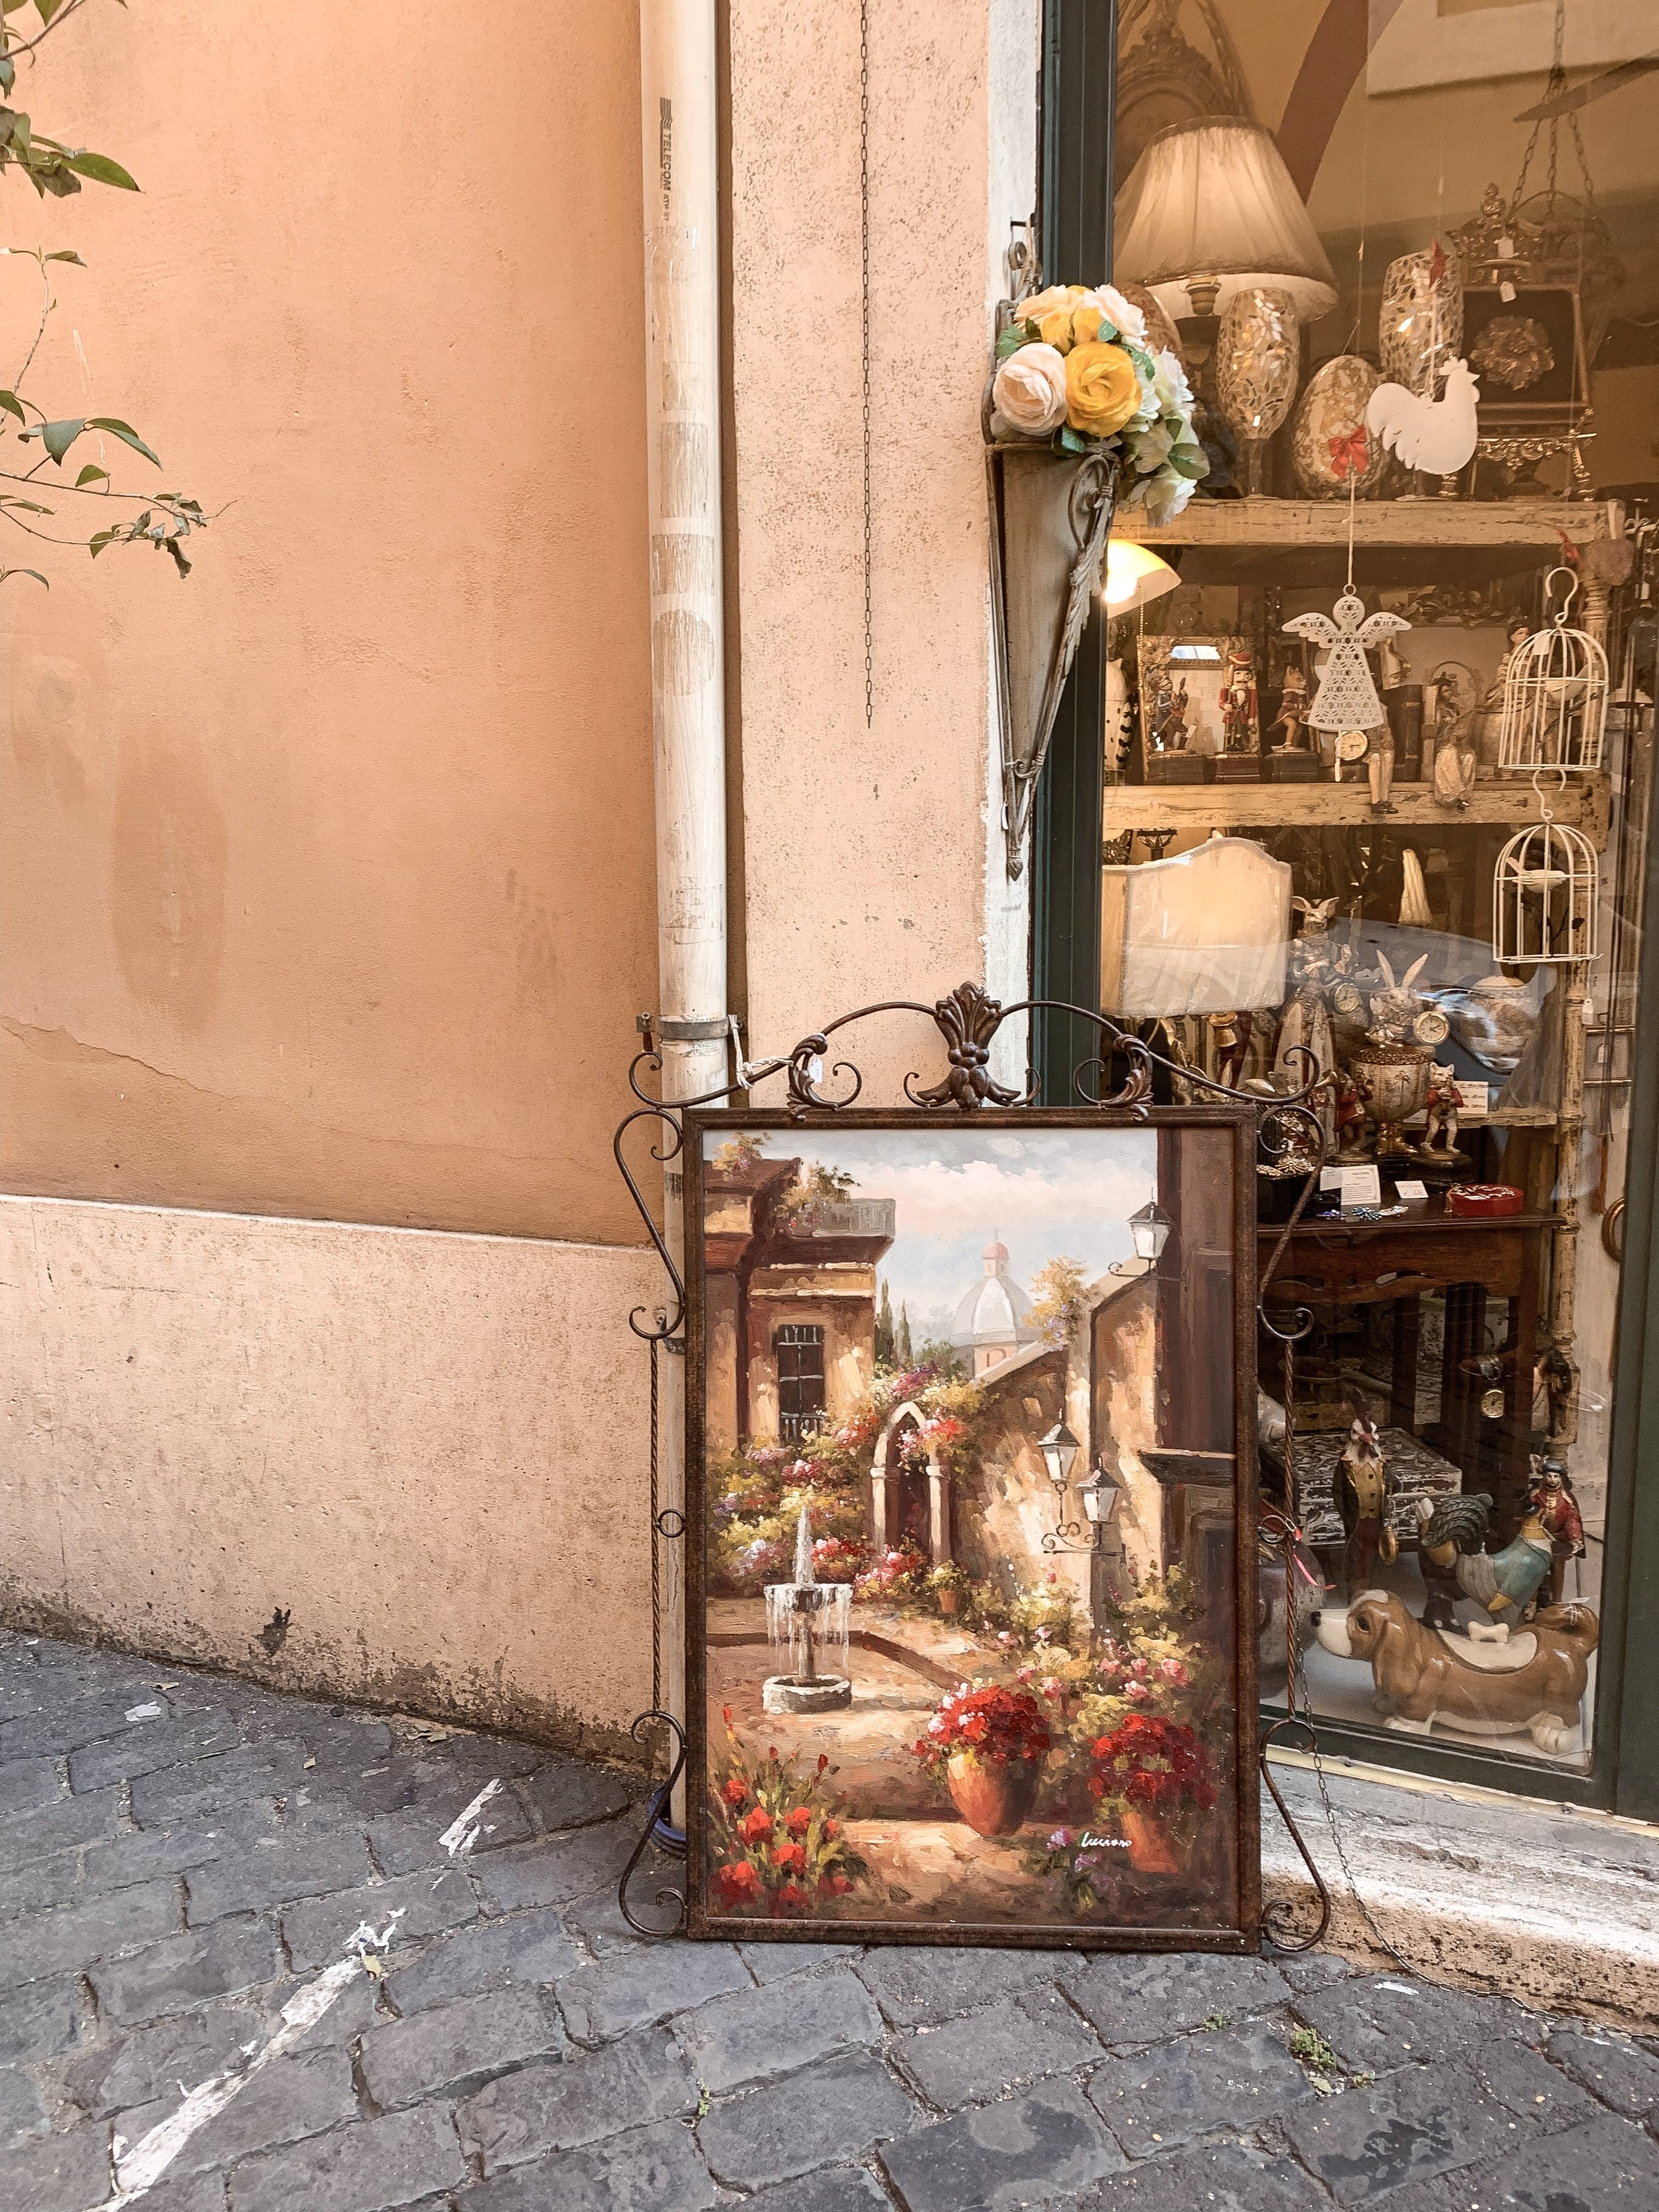 Walking through one of the side streets in Rome.